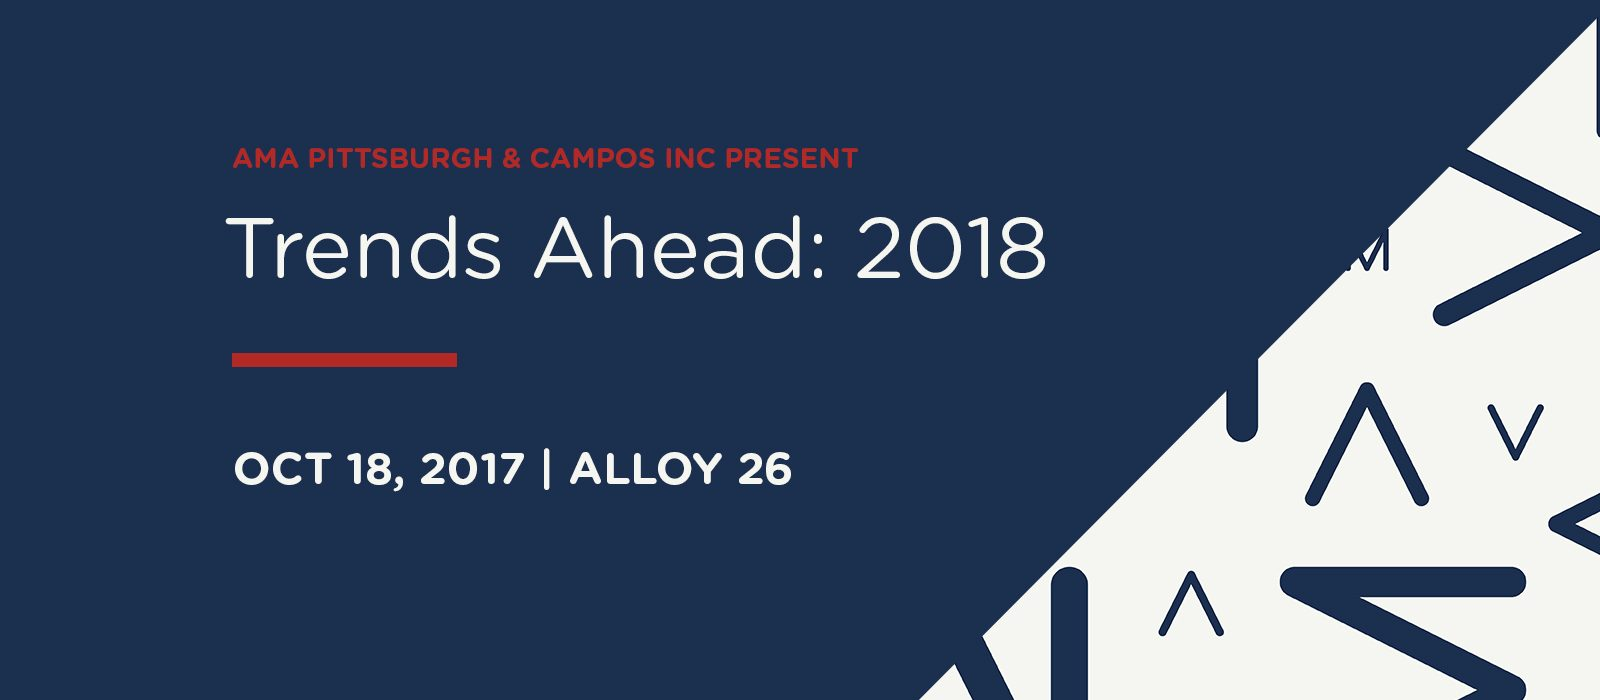 Trends Ahead 2018